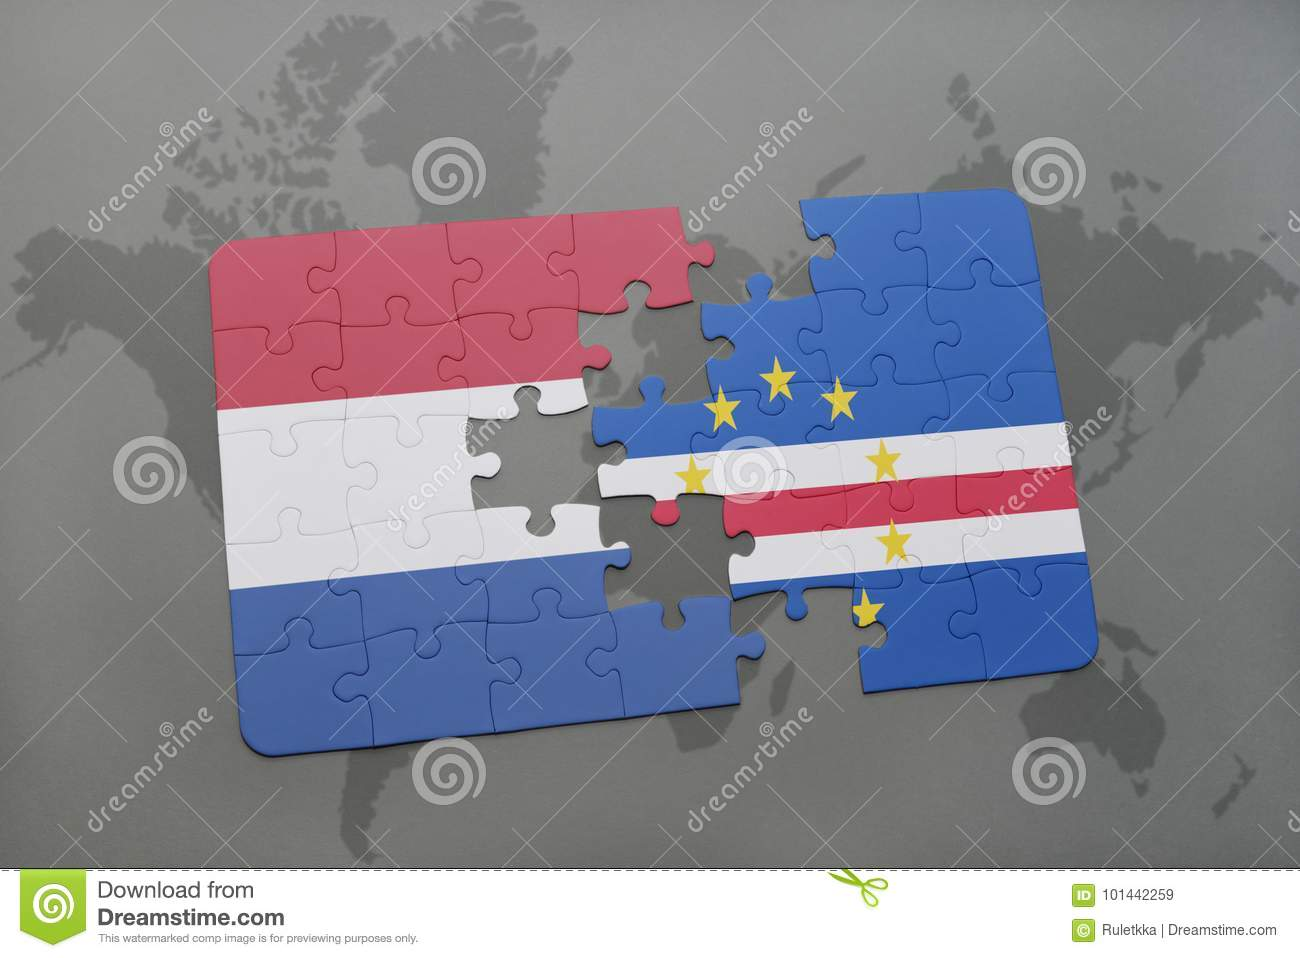 Puzzle With The National Flag Of Netherlands And Cape Verde On A